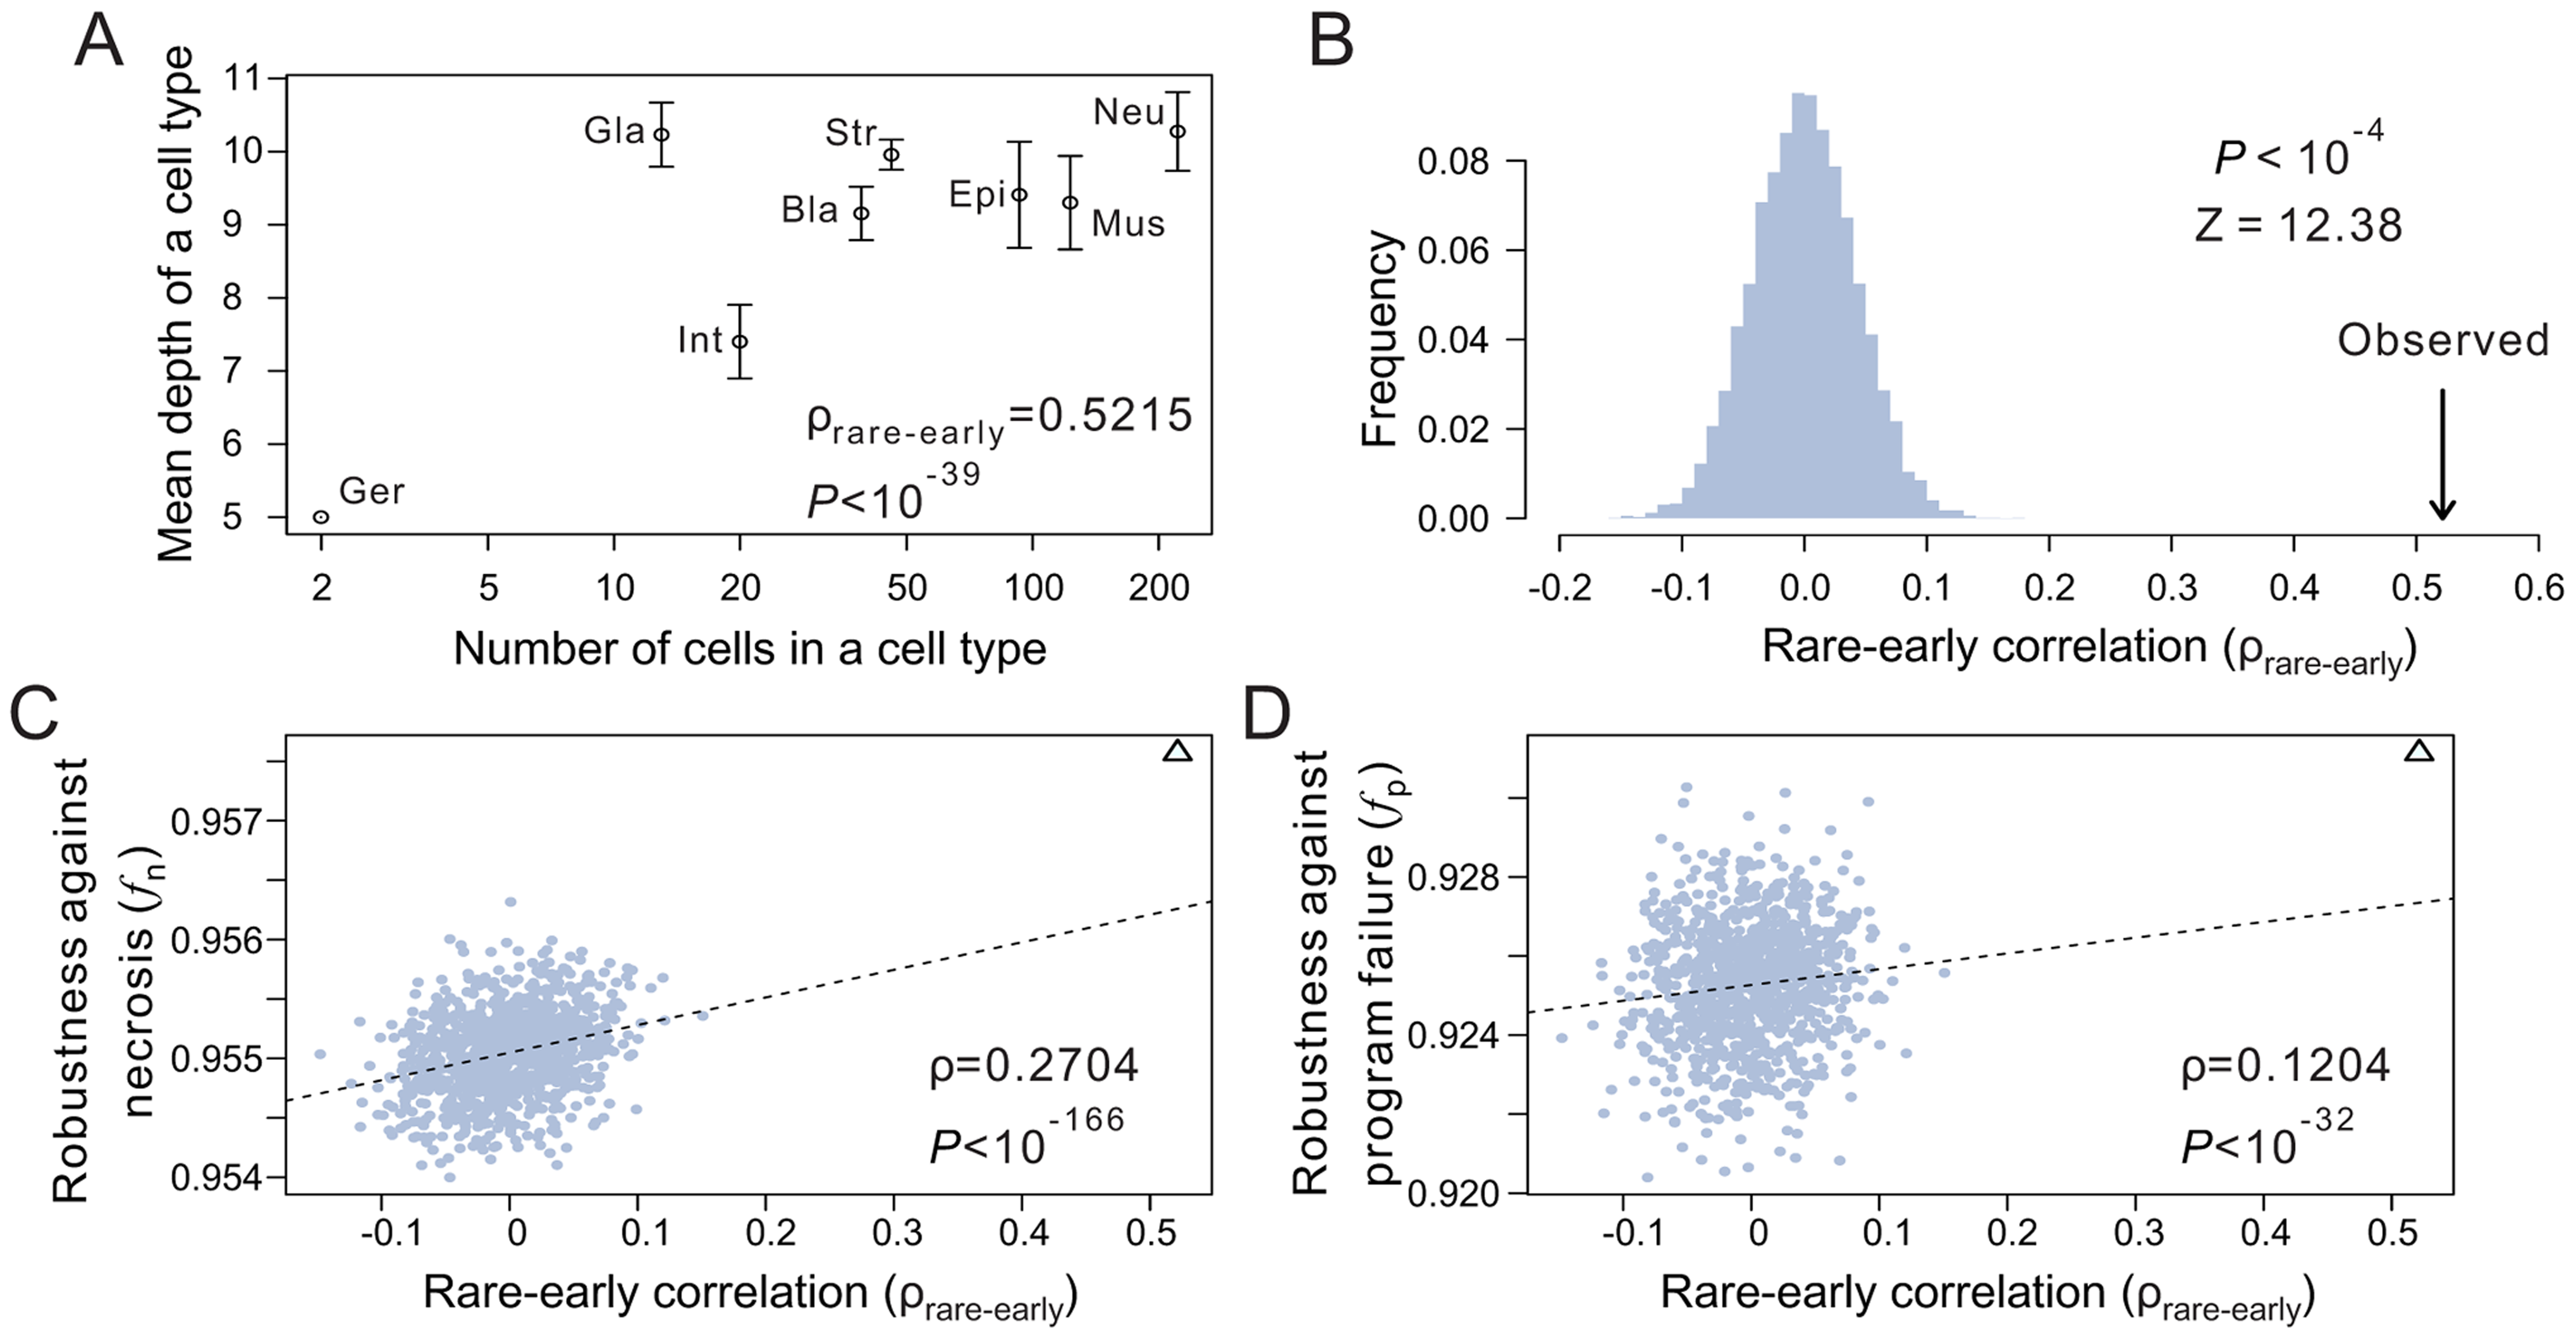 The tendency for rare cells to have low depths improves the robustness of the <i>C. elegans</i> lineage.